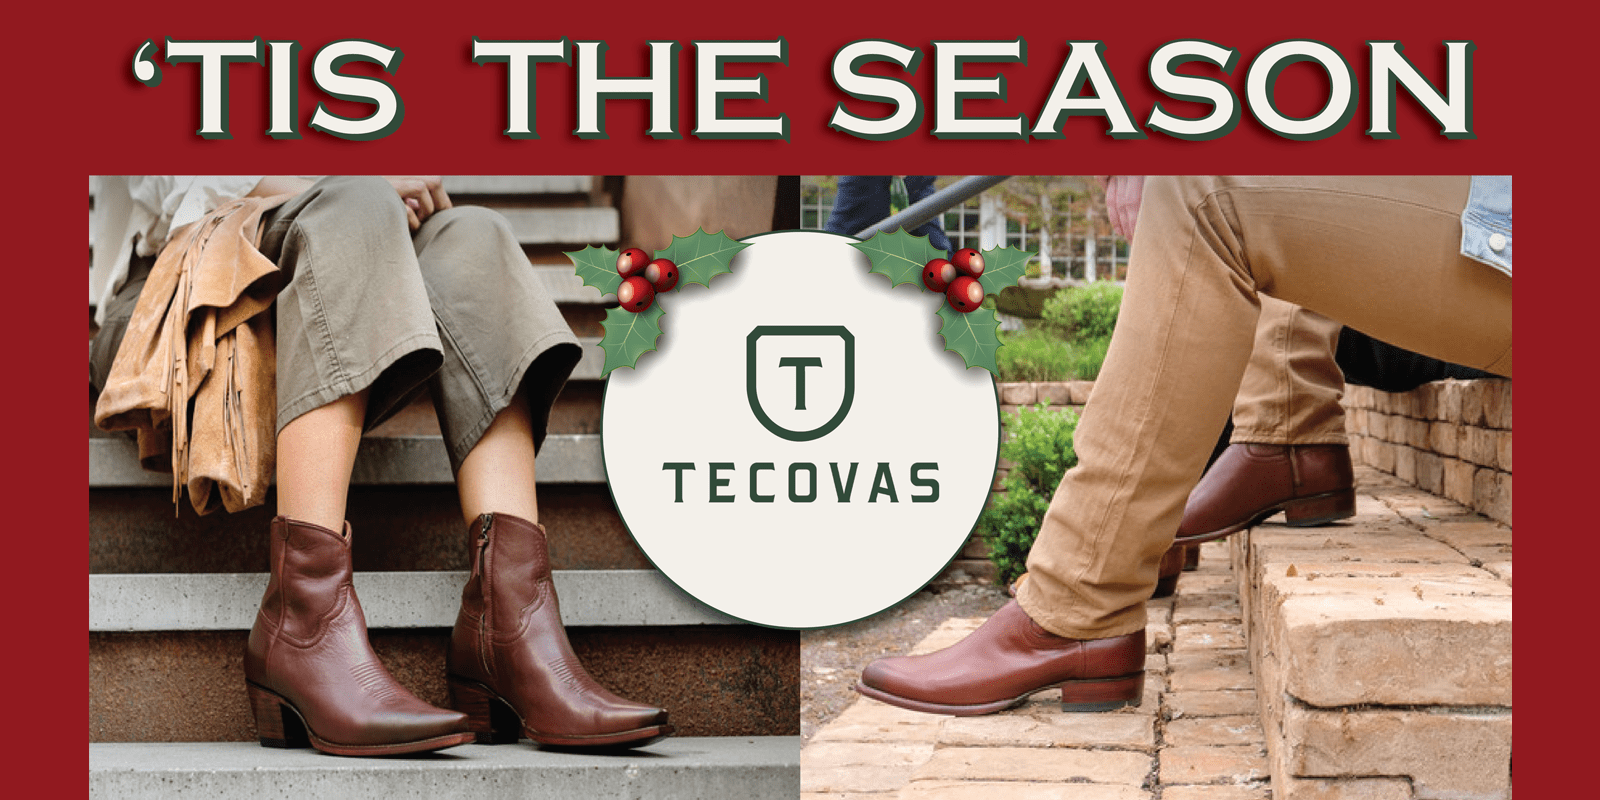 tis the season tecovas giveaway